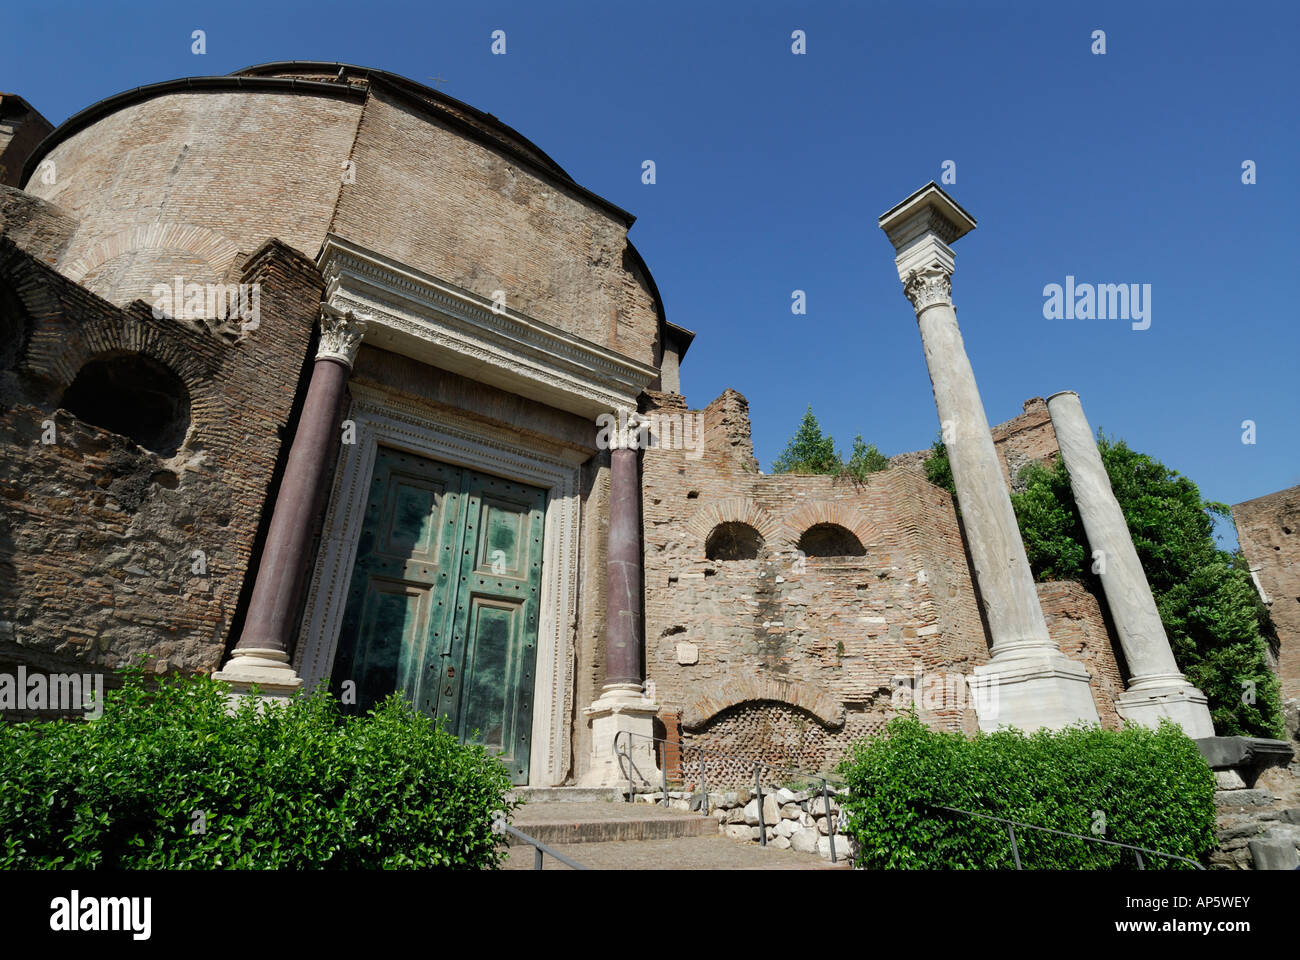 Rome Italy Tomb of Romulus in the Roman Forum - Stock Image